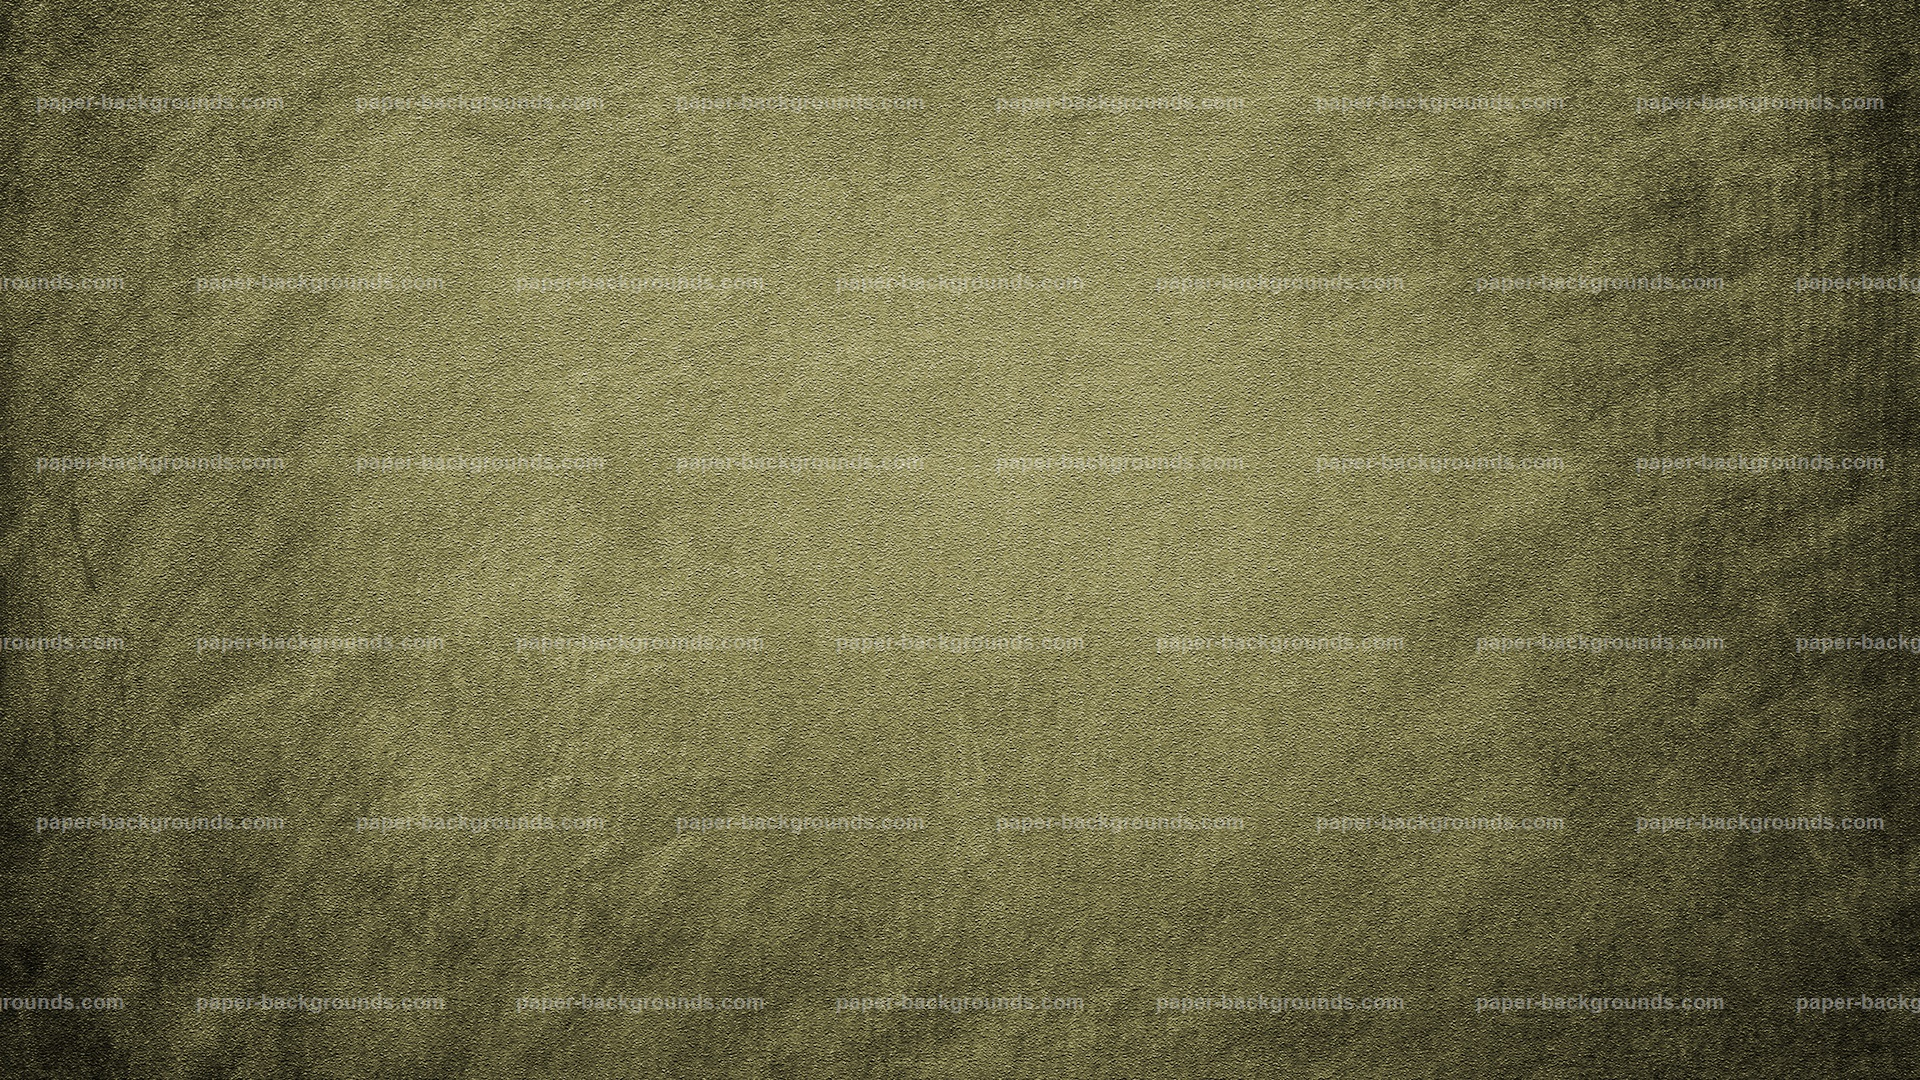 Brown Grunge Vintage Texture HD